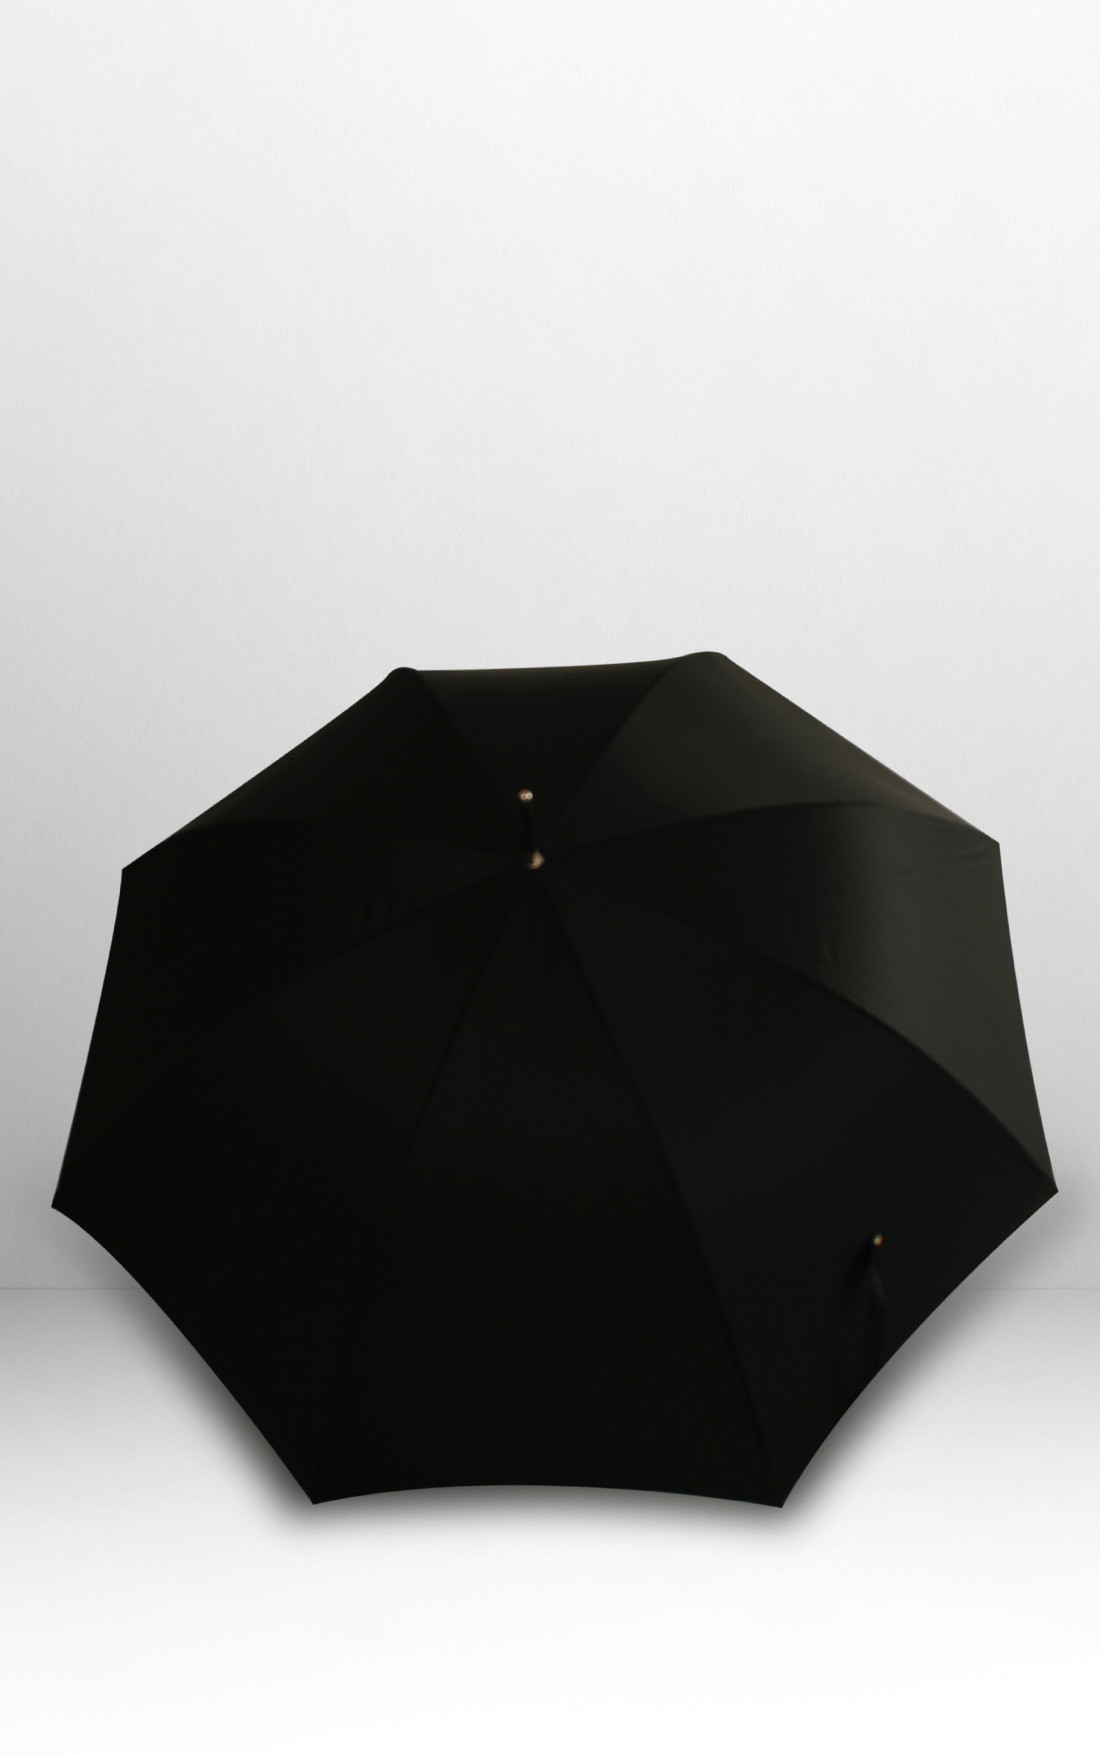 Pasotti - Silver Lion Umbrella (478-RASO-OXFORD/18-W37NERO)